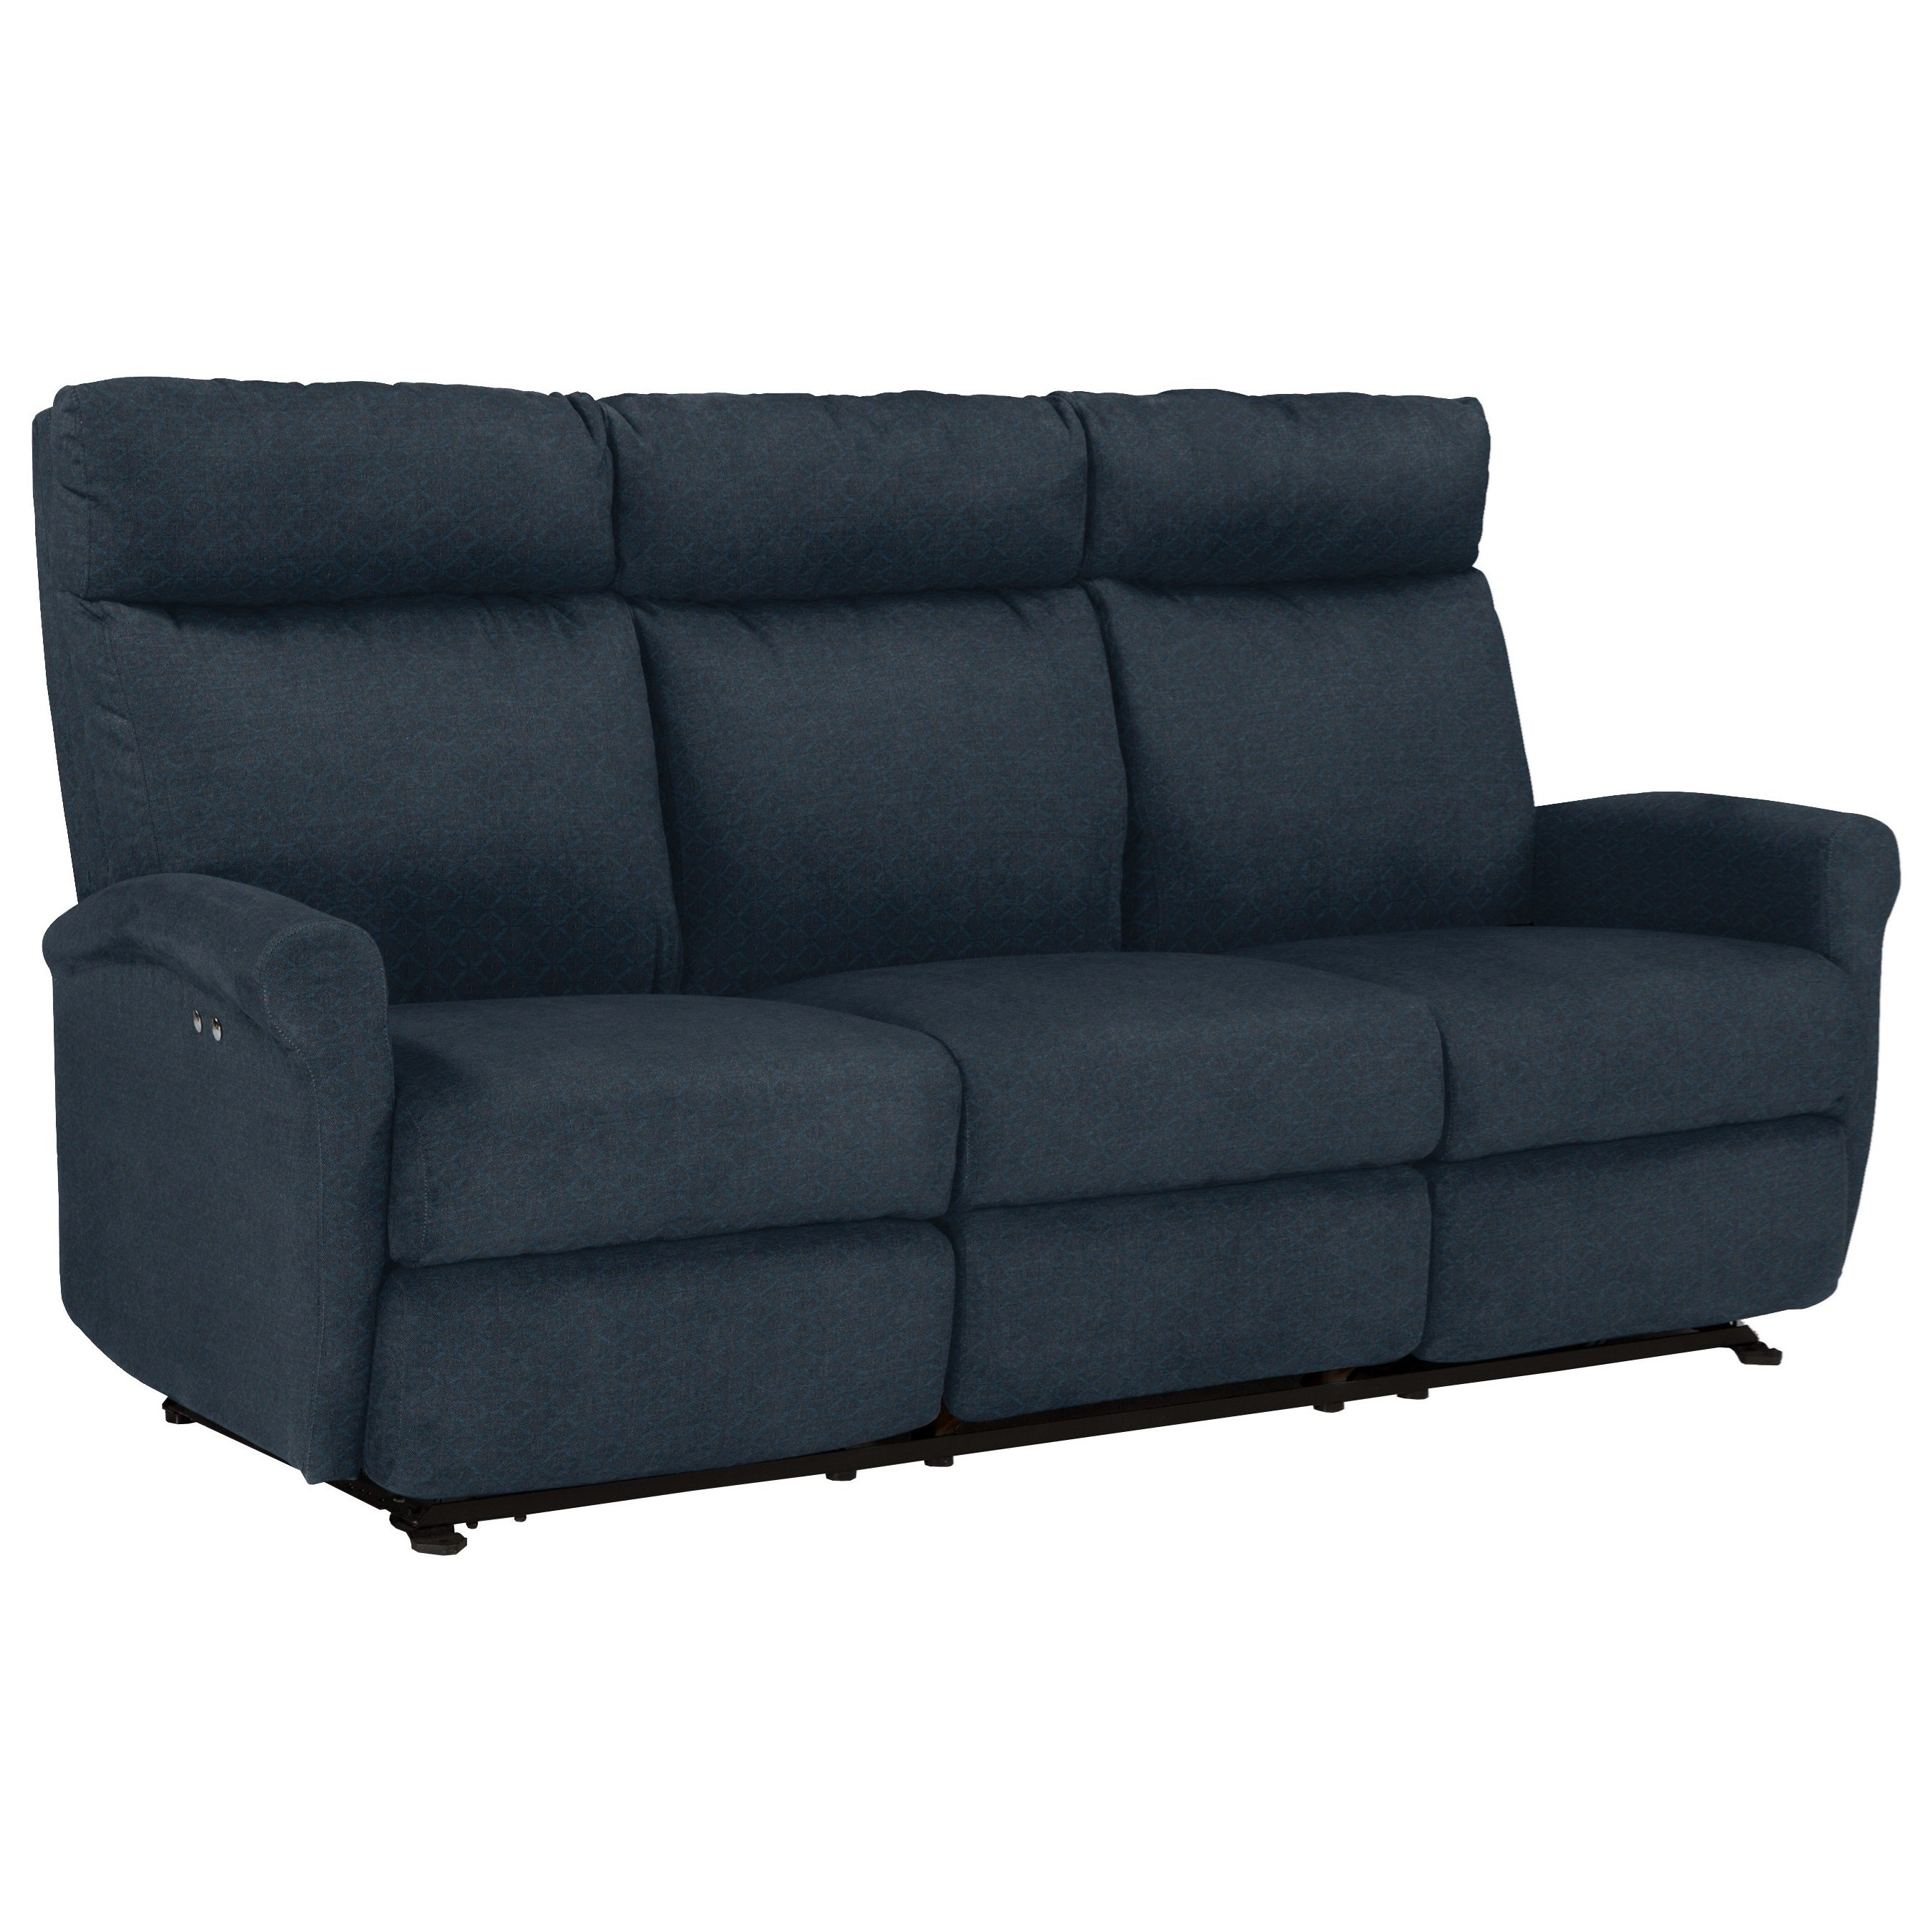 Best Home Furnishings Codie Reclining Sofa - Item Number: 1002935112-18022